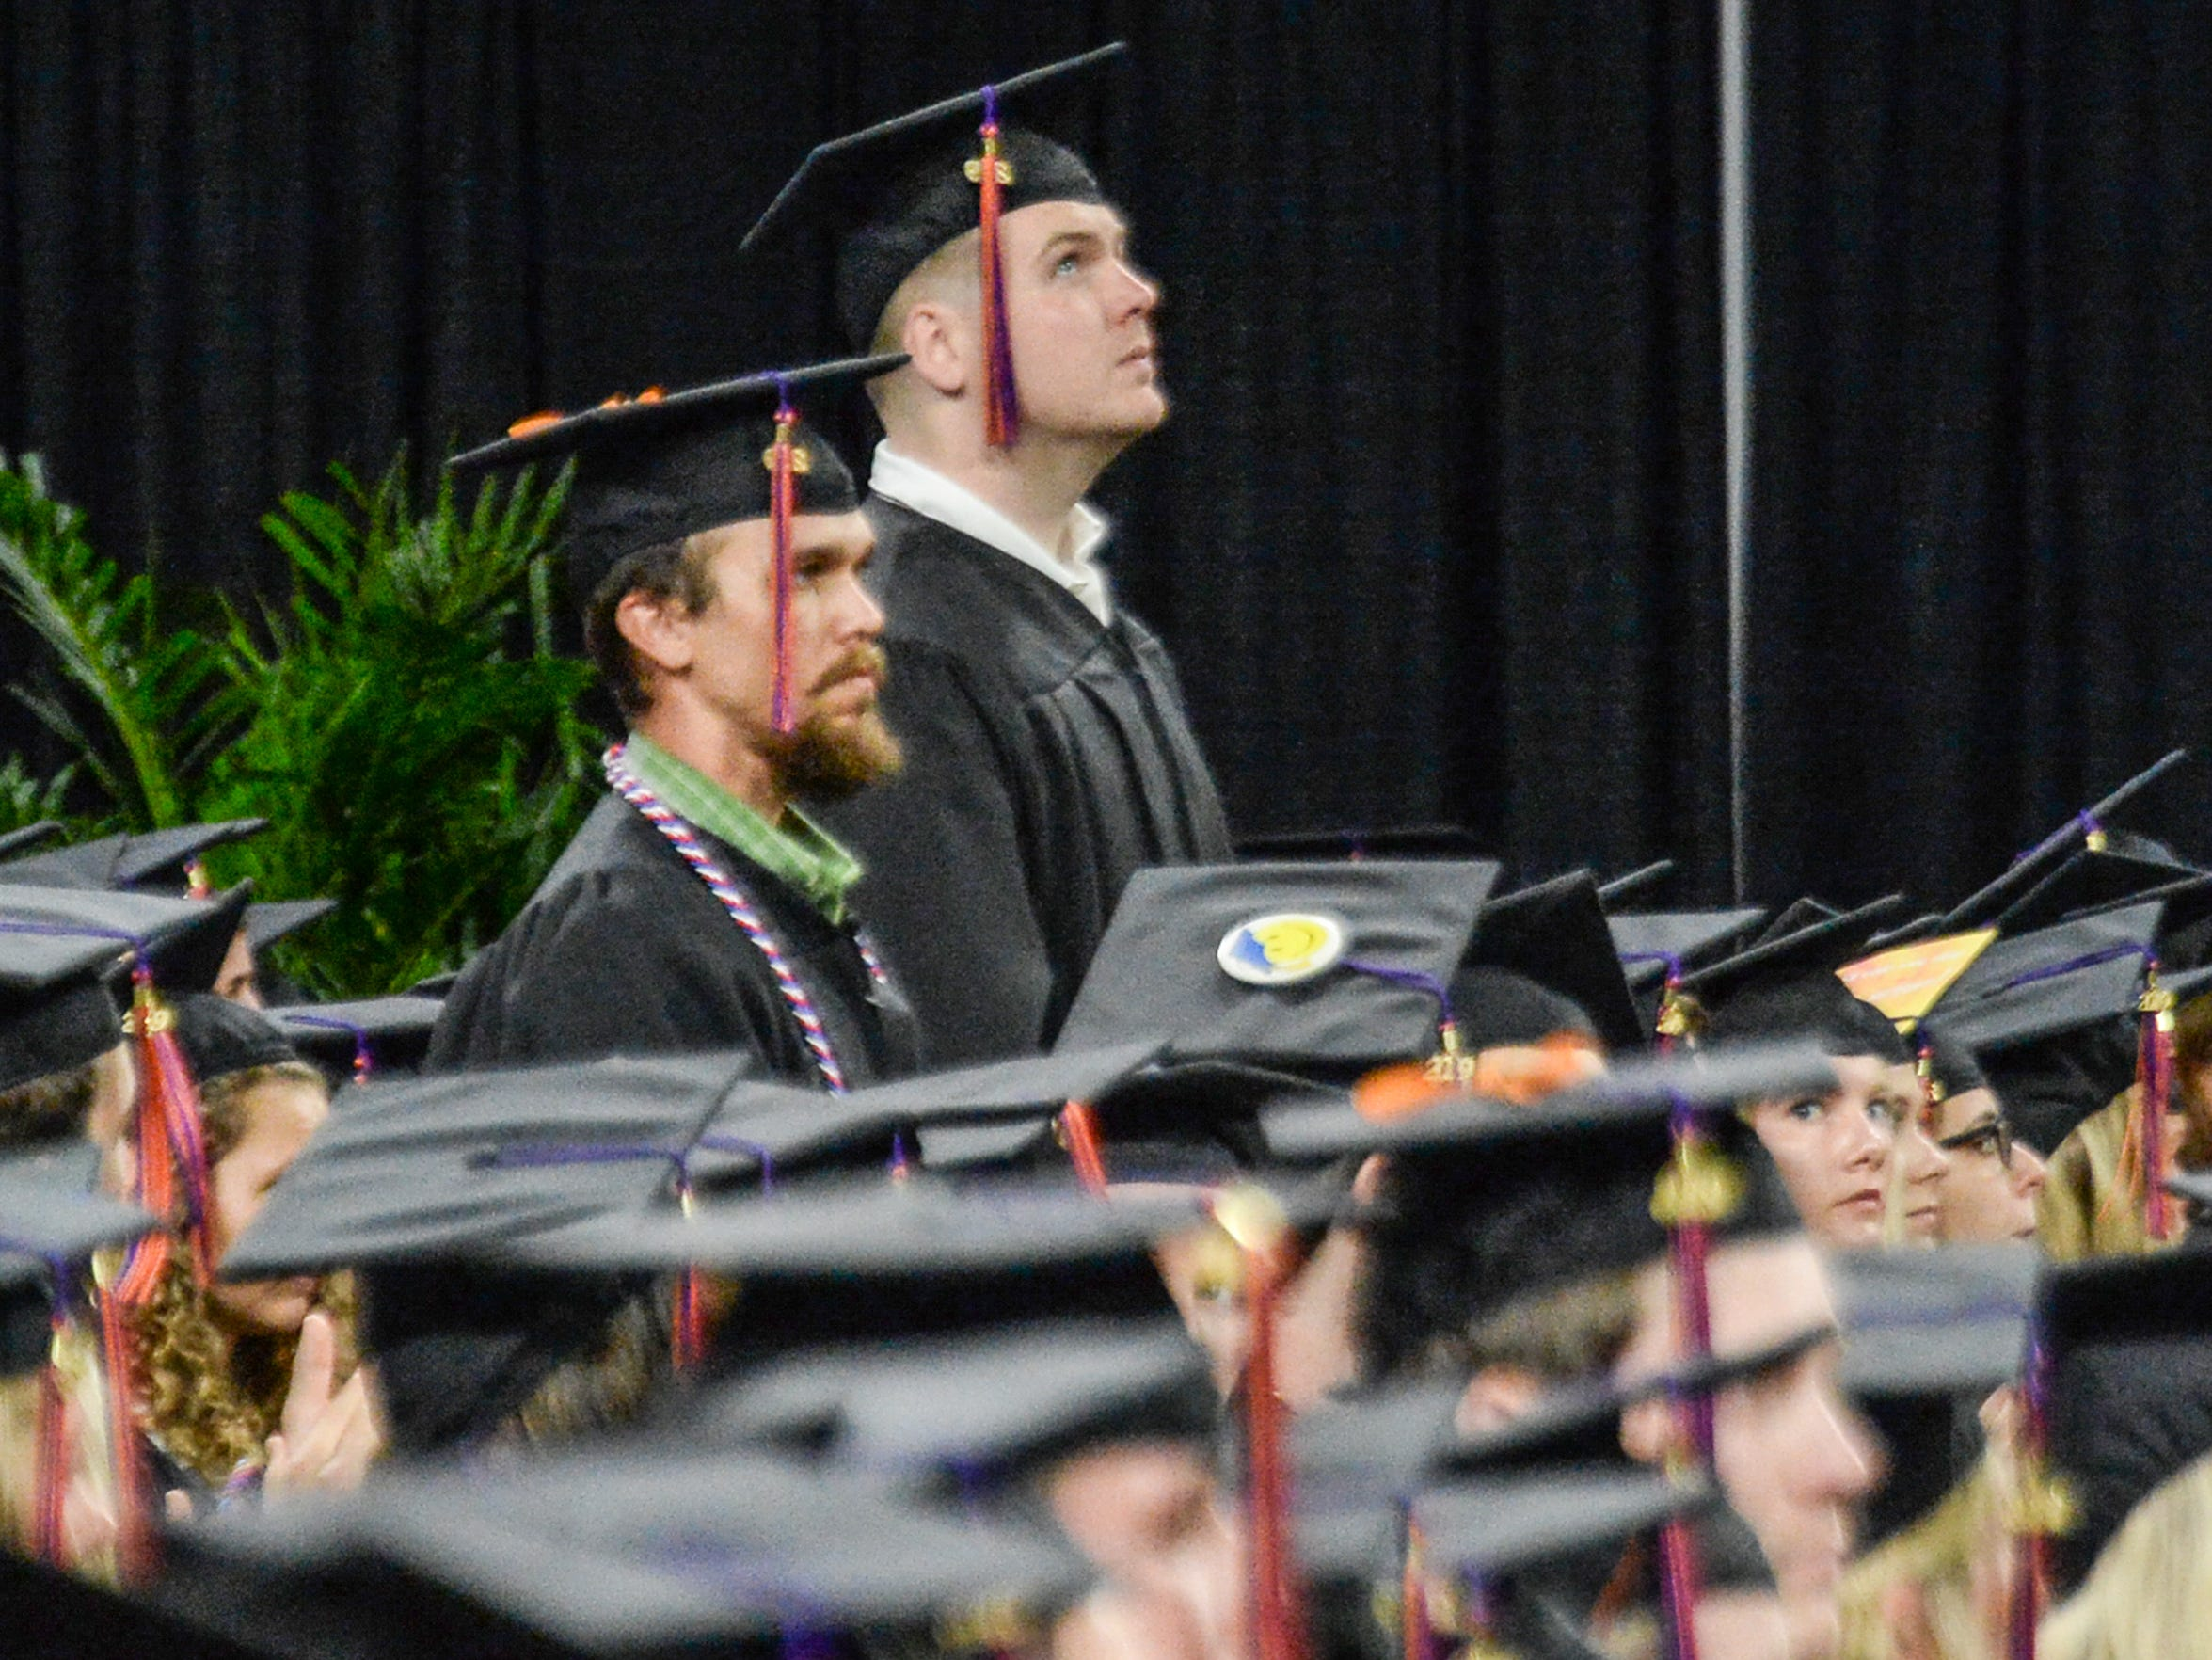 President Jim Clements recognizes graduates and others in the military during Clemson University commencement ceremonies in Littlejohn Coliseum in Clemson Friday, May 10, 2019.